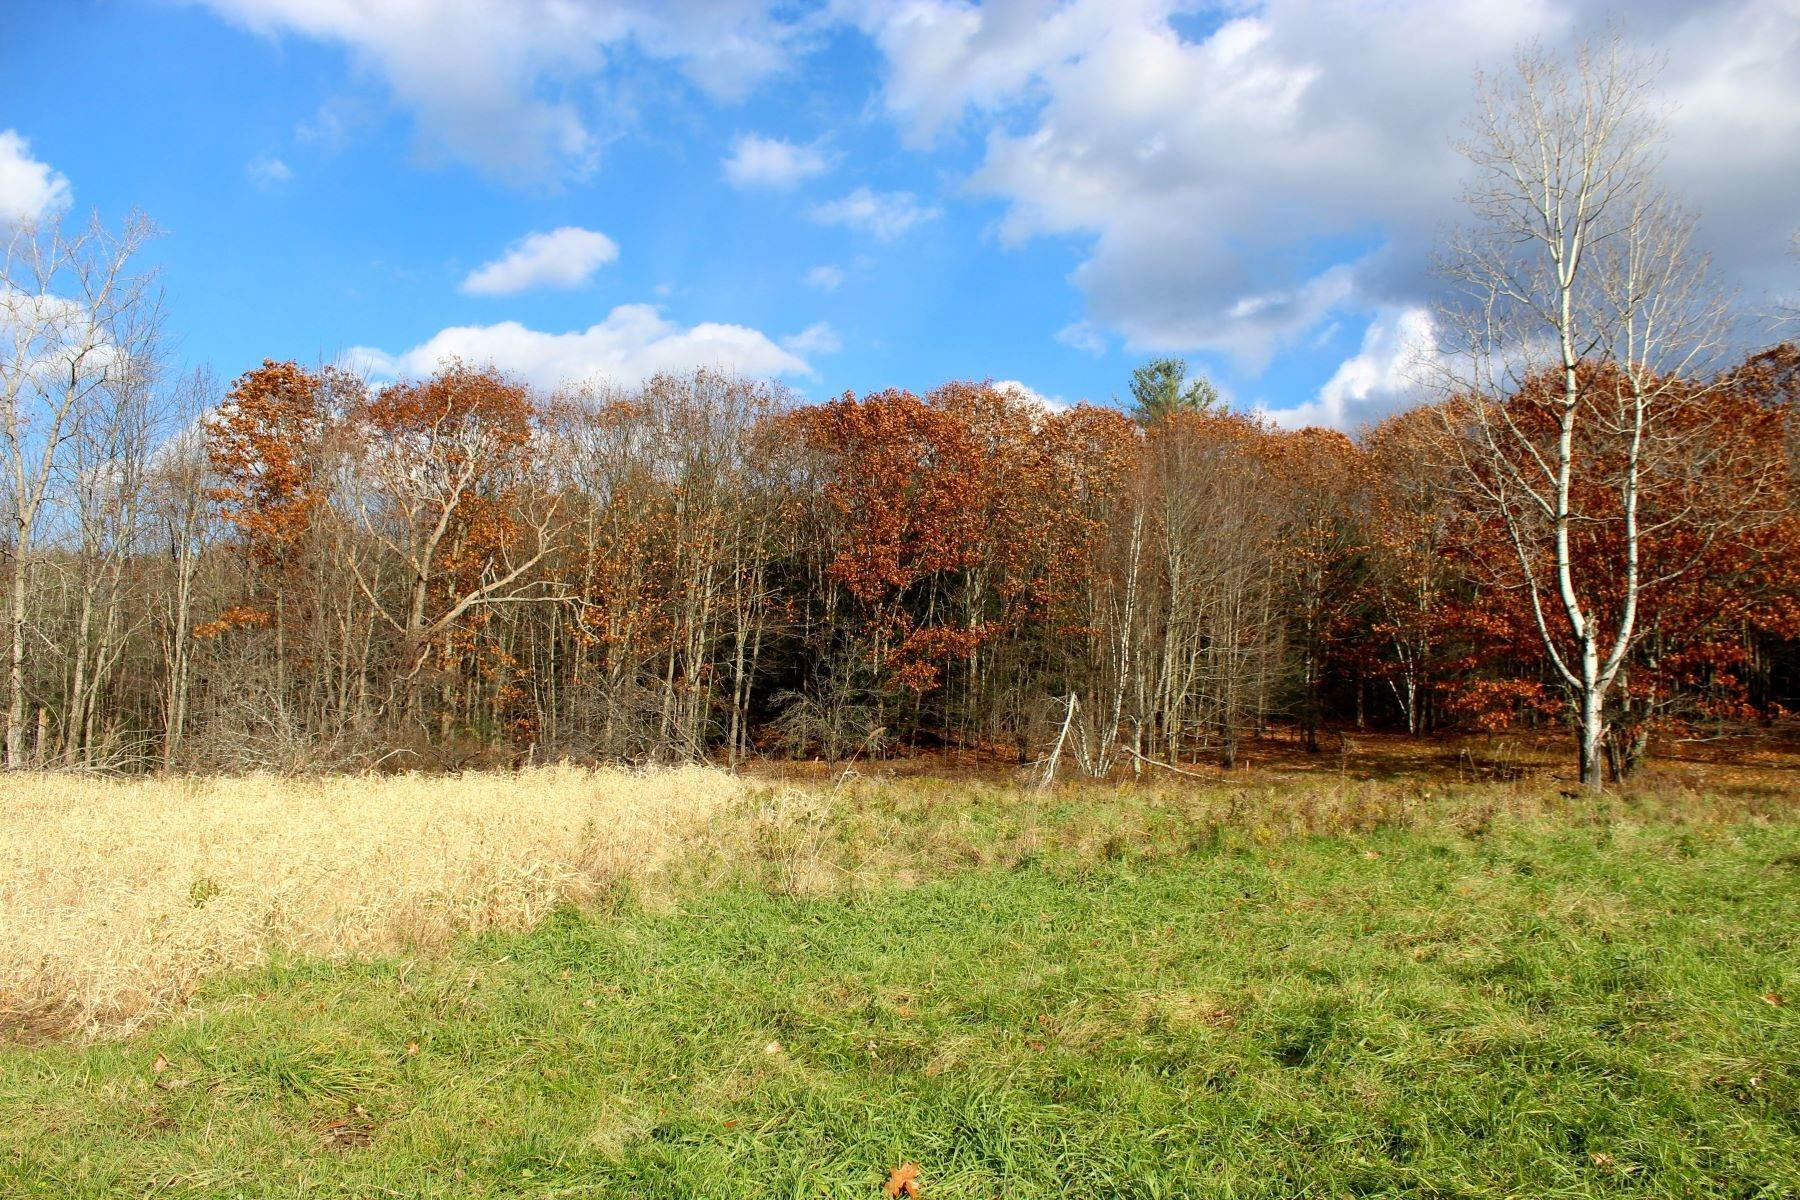 Terreno per Vendita alle ore Cleared Land in Averill Park, NY 61 Eastern Union Turnpike Averill Park, New York 12018 Stati Uniti